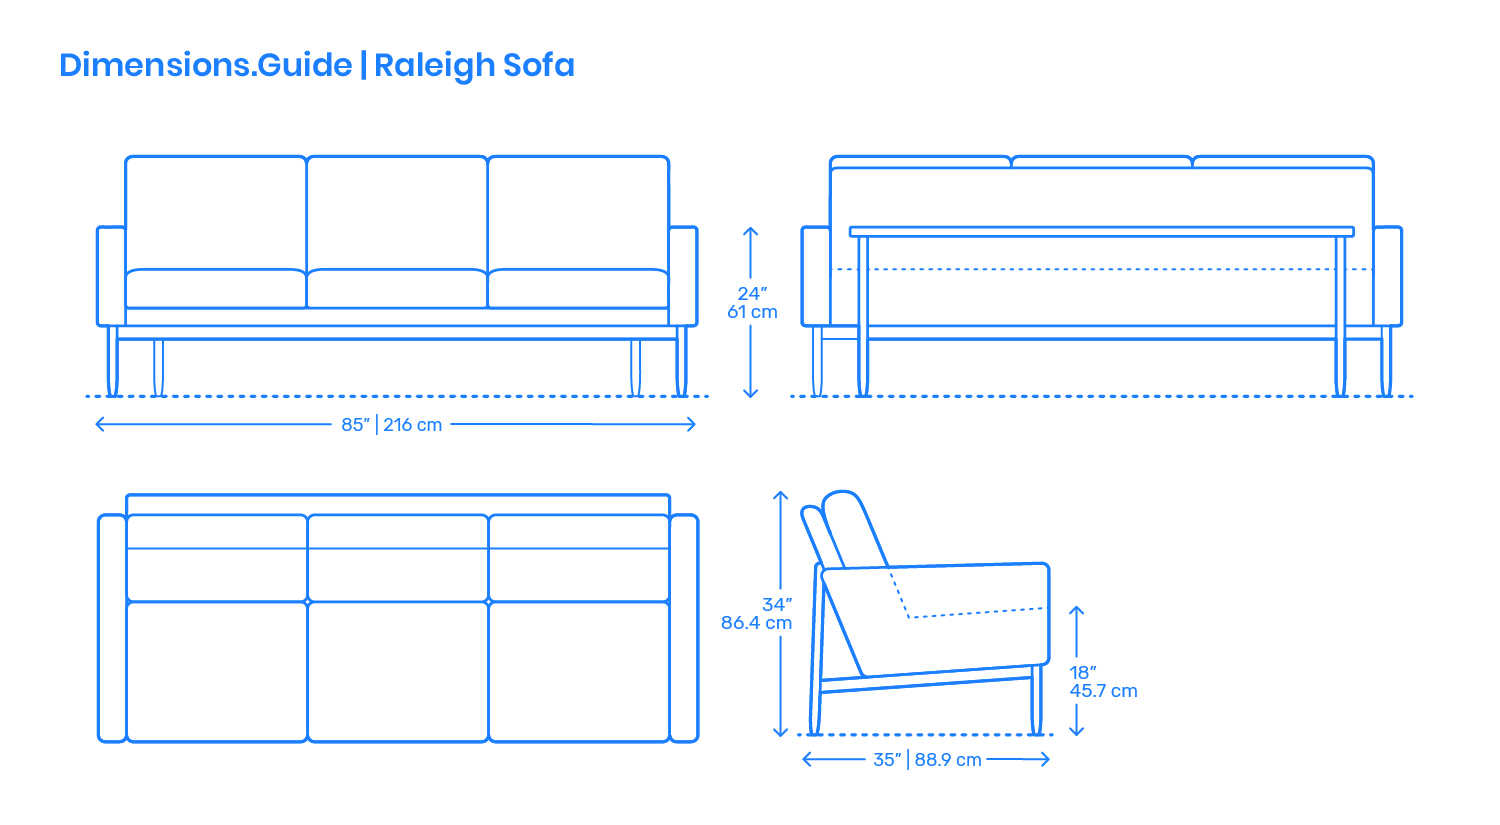 Amazon Com Used Sofas Couches Living Room Furniture >> Raleigh Sofa Dimensions & Drawings | Dimensions.Guide